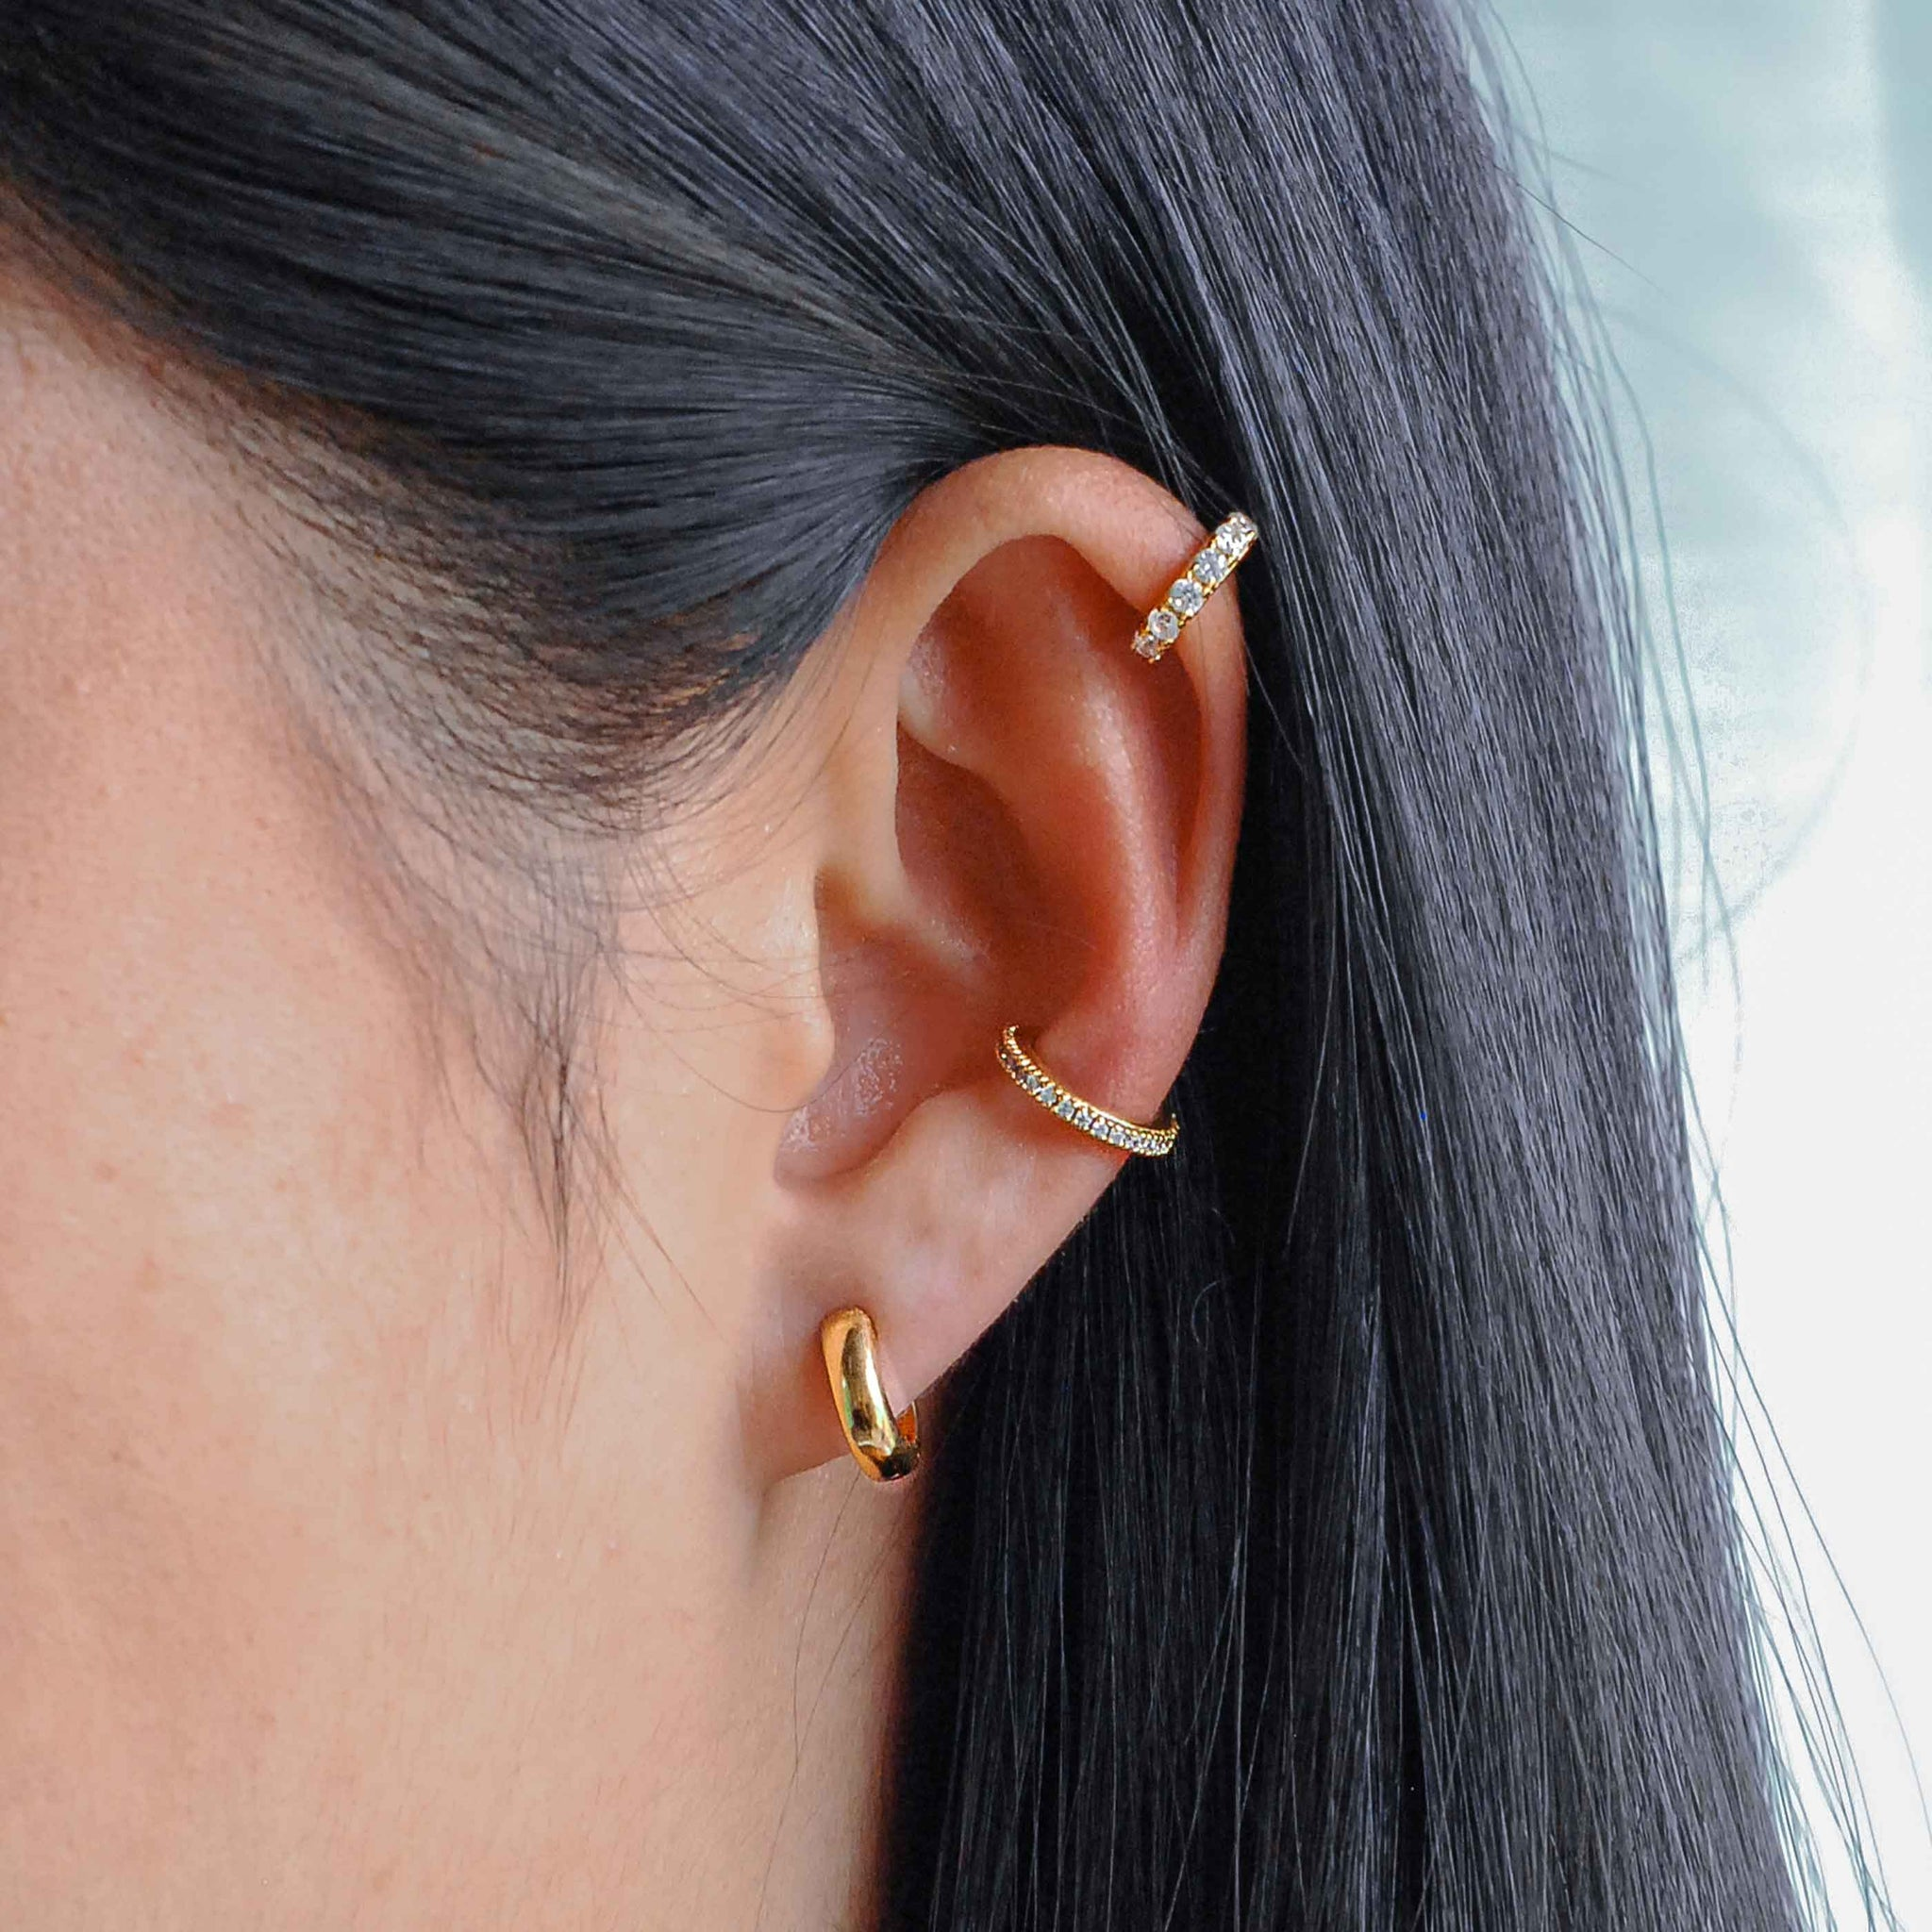 Crystal Ear Cuff in Gold worn with bold huggies in gold